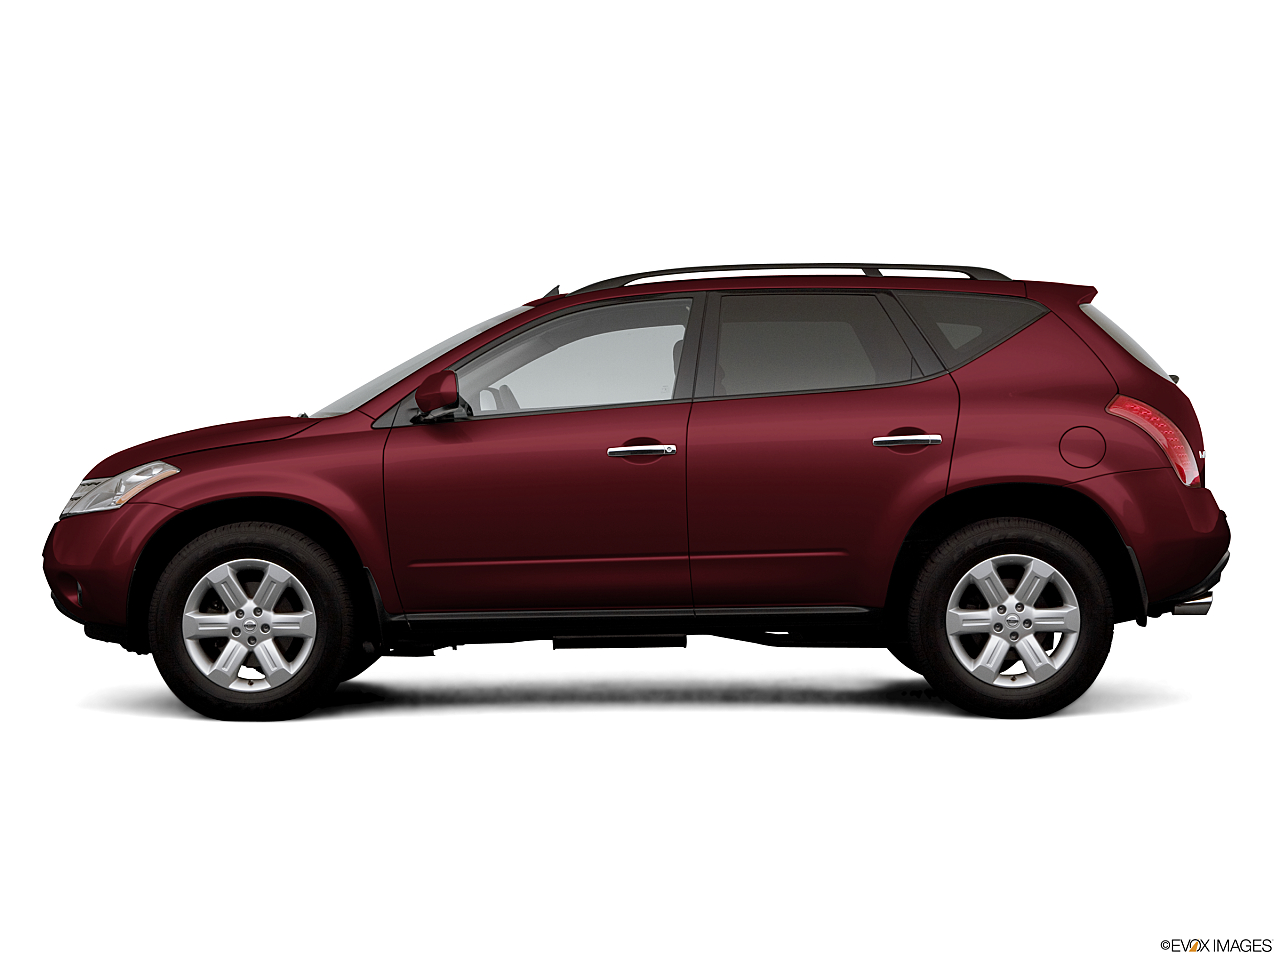 2006 nissan murano s at michael 39 s foreign cars of hickory nc research groovecar. Black Bedroom Furniture Sets. Home Design Ideas